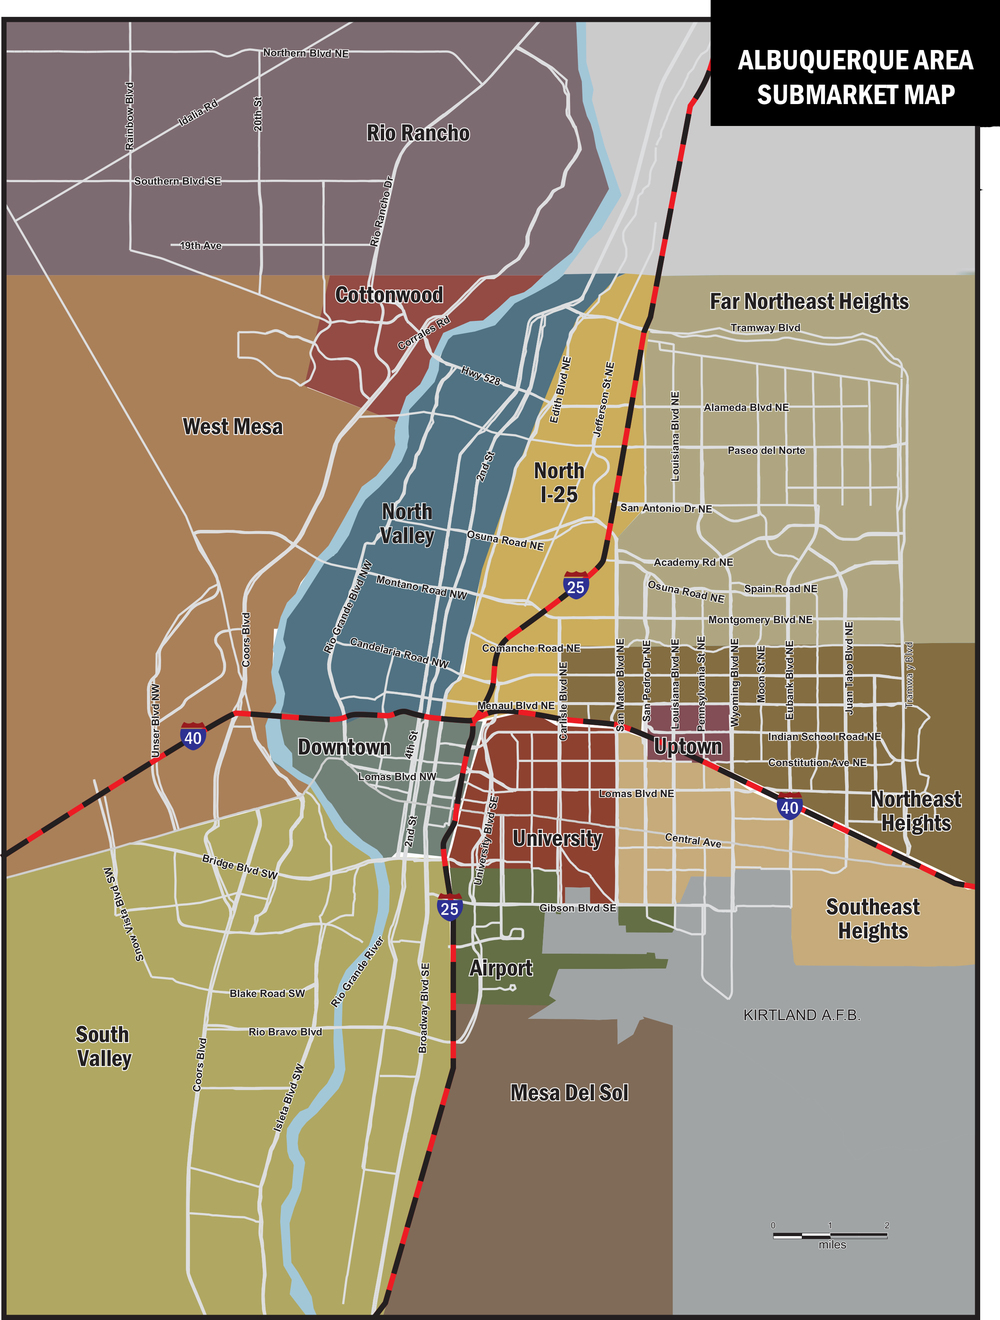 Albuquerque Submarket Map